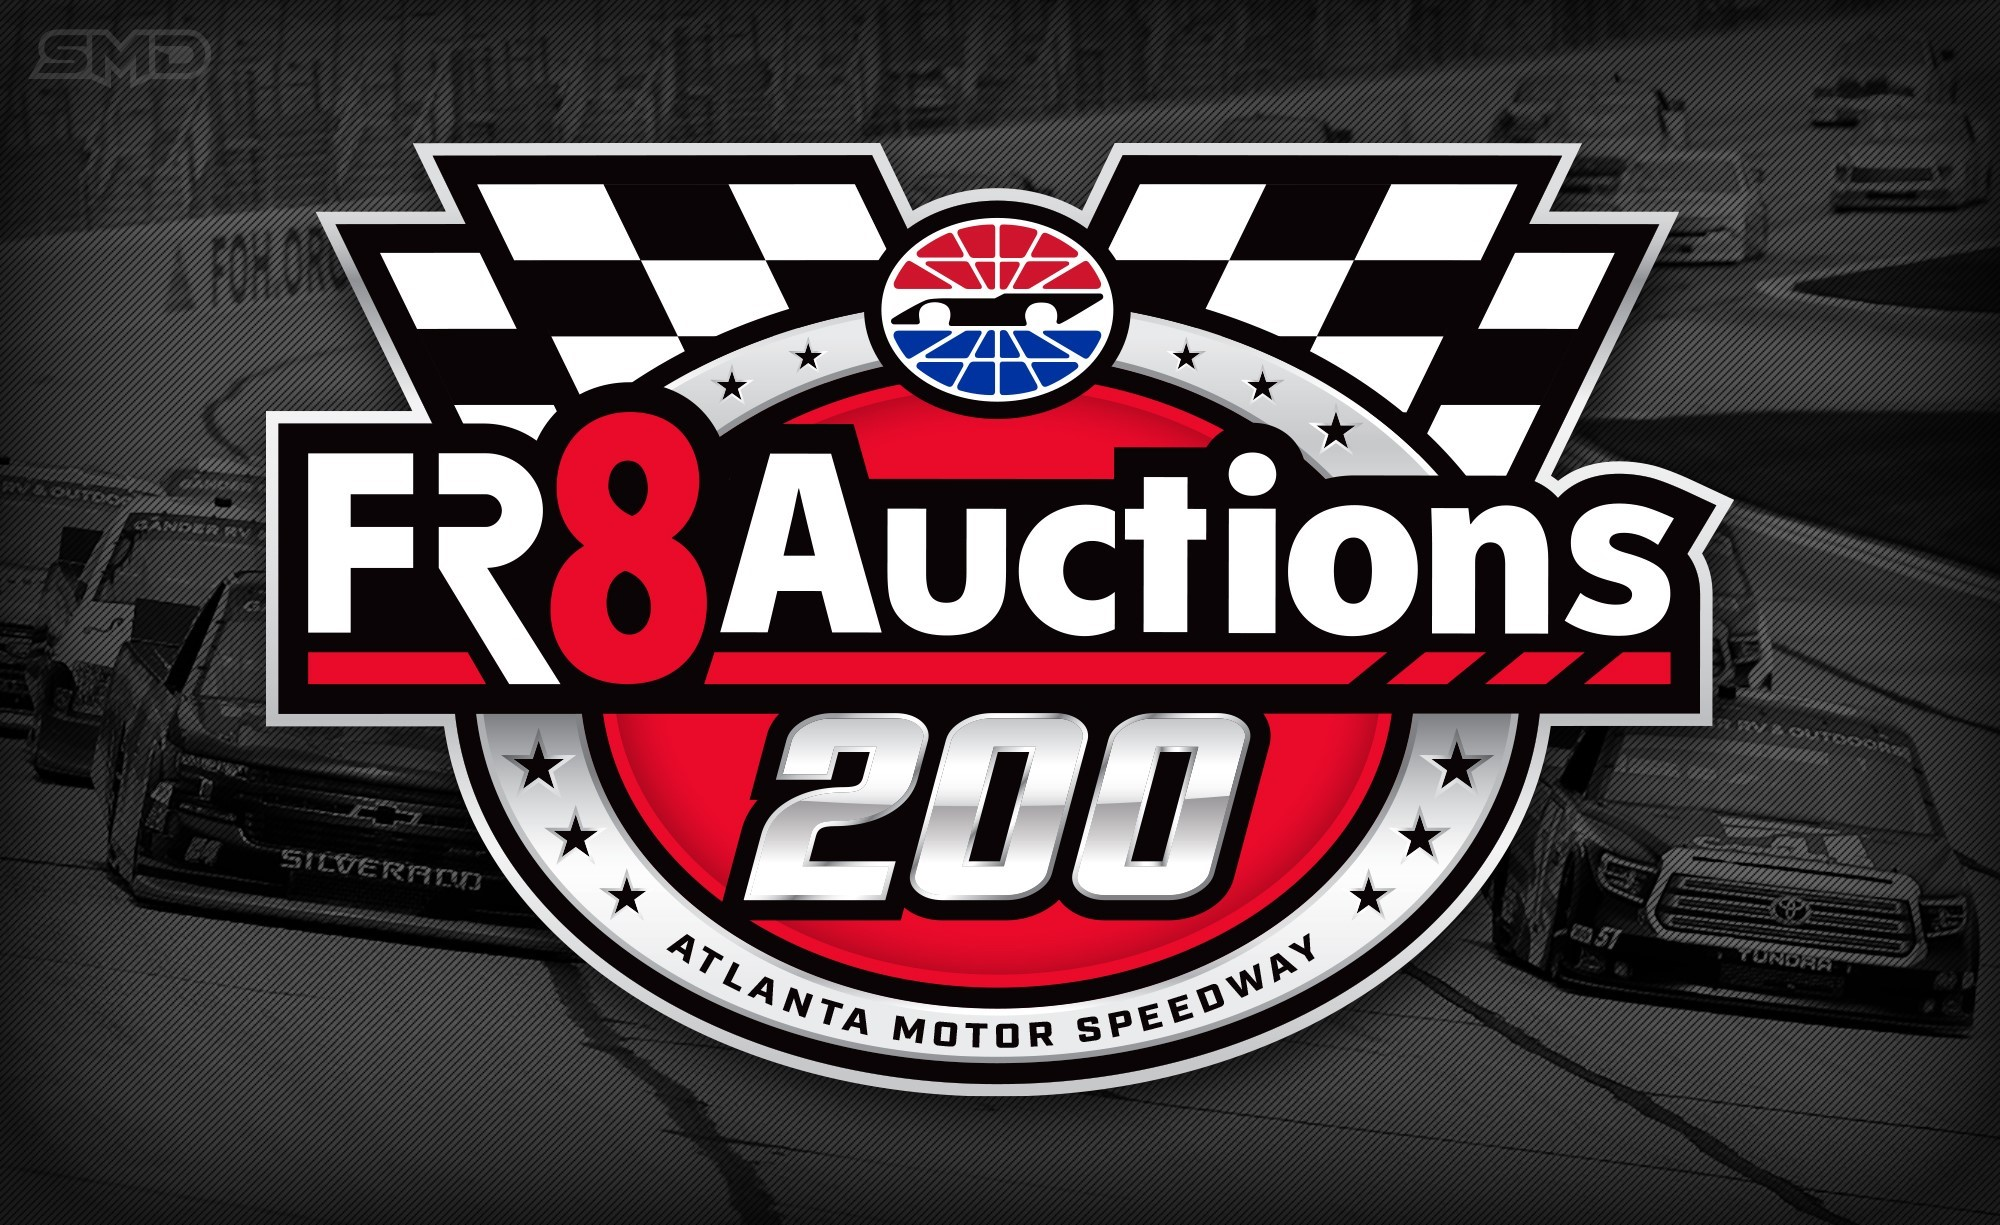 NASCAR Camping World Truck Series; Fr8Auctions 200